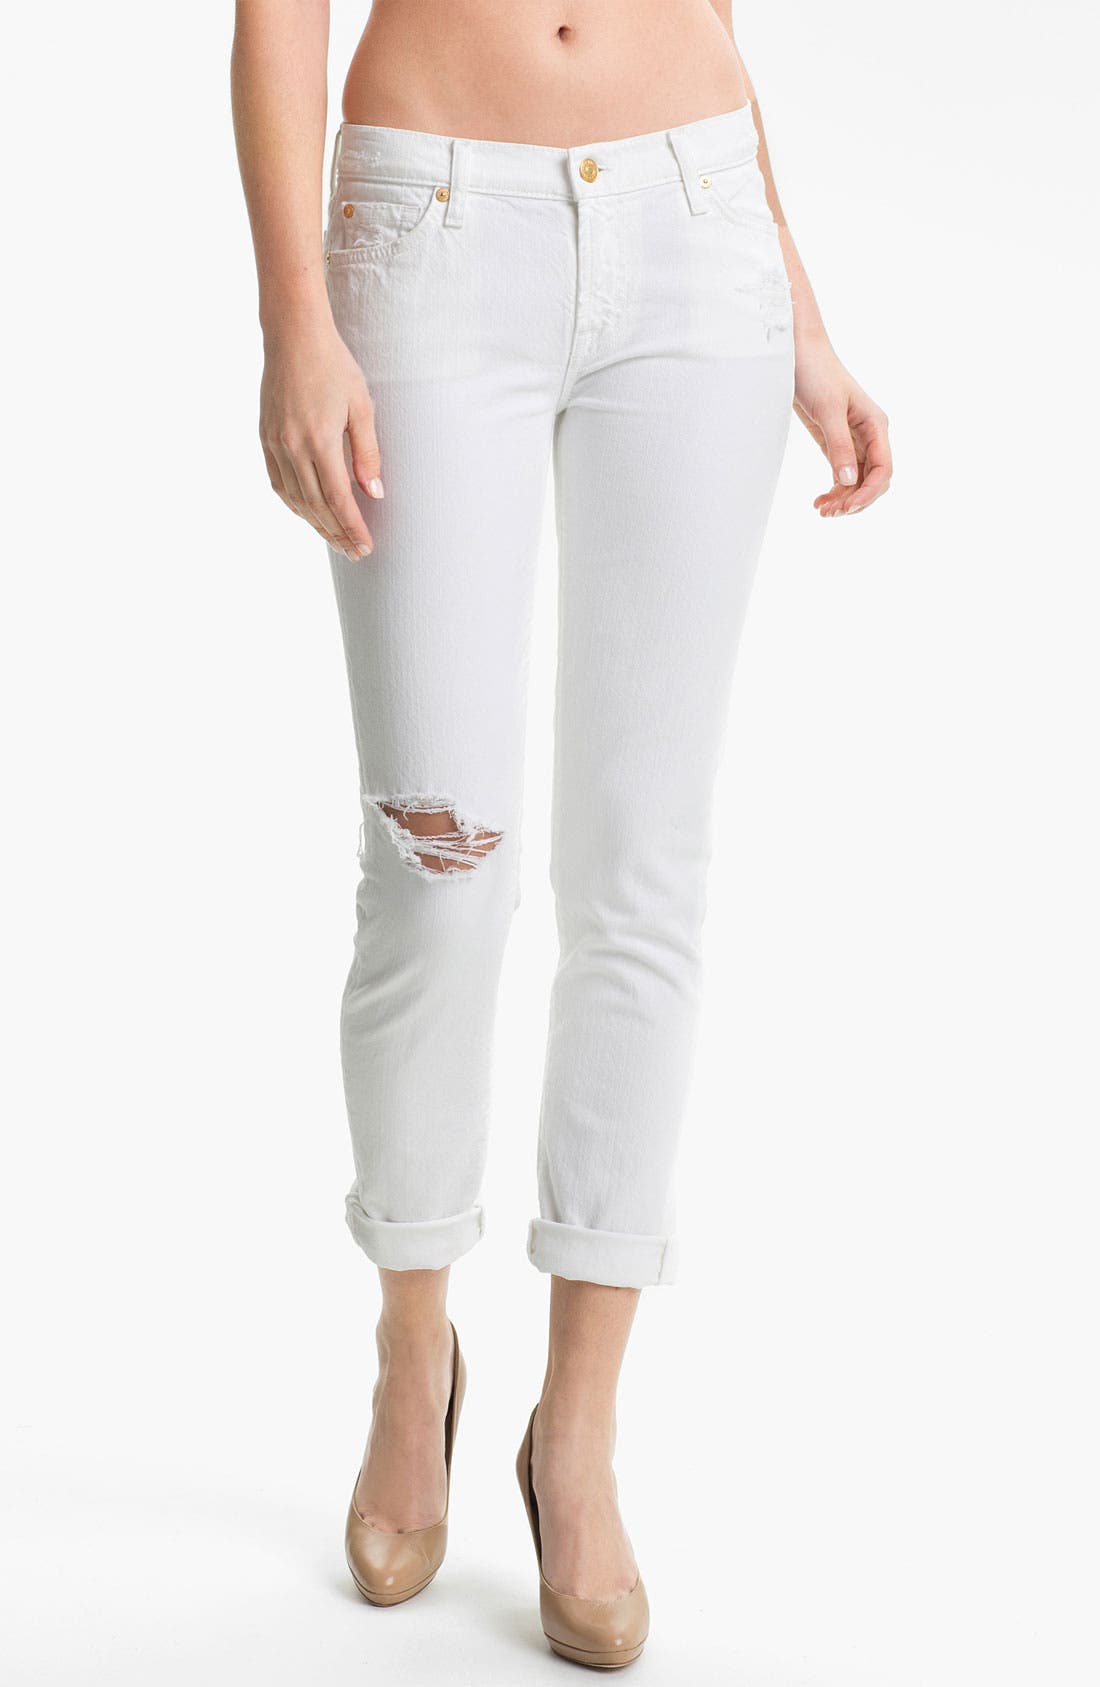 Alternate Image 1 Selected - 7 For All Mankind® 'The Slim Cigarette' Stretch Jeans (White Destroyed)